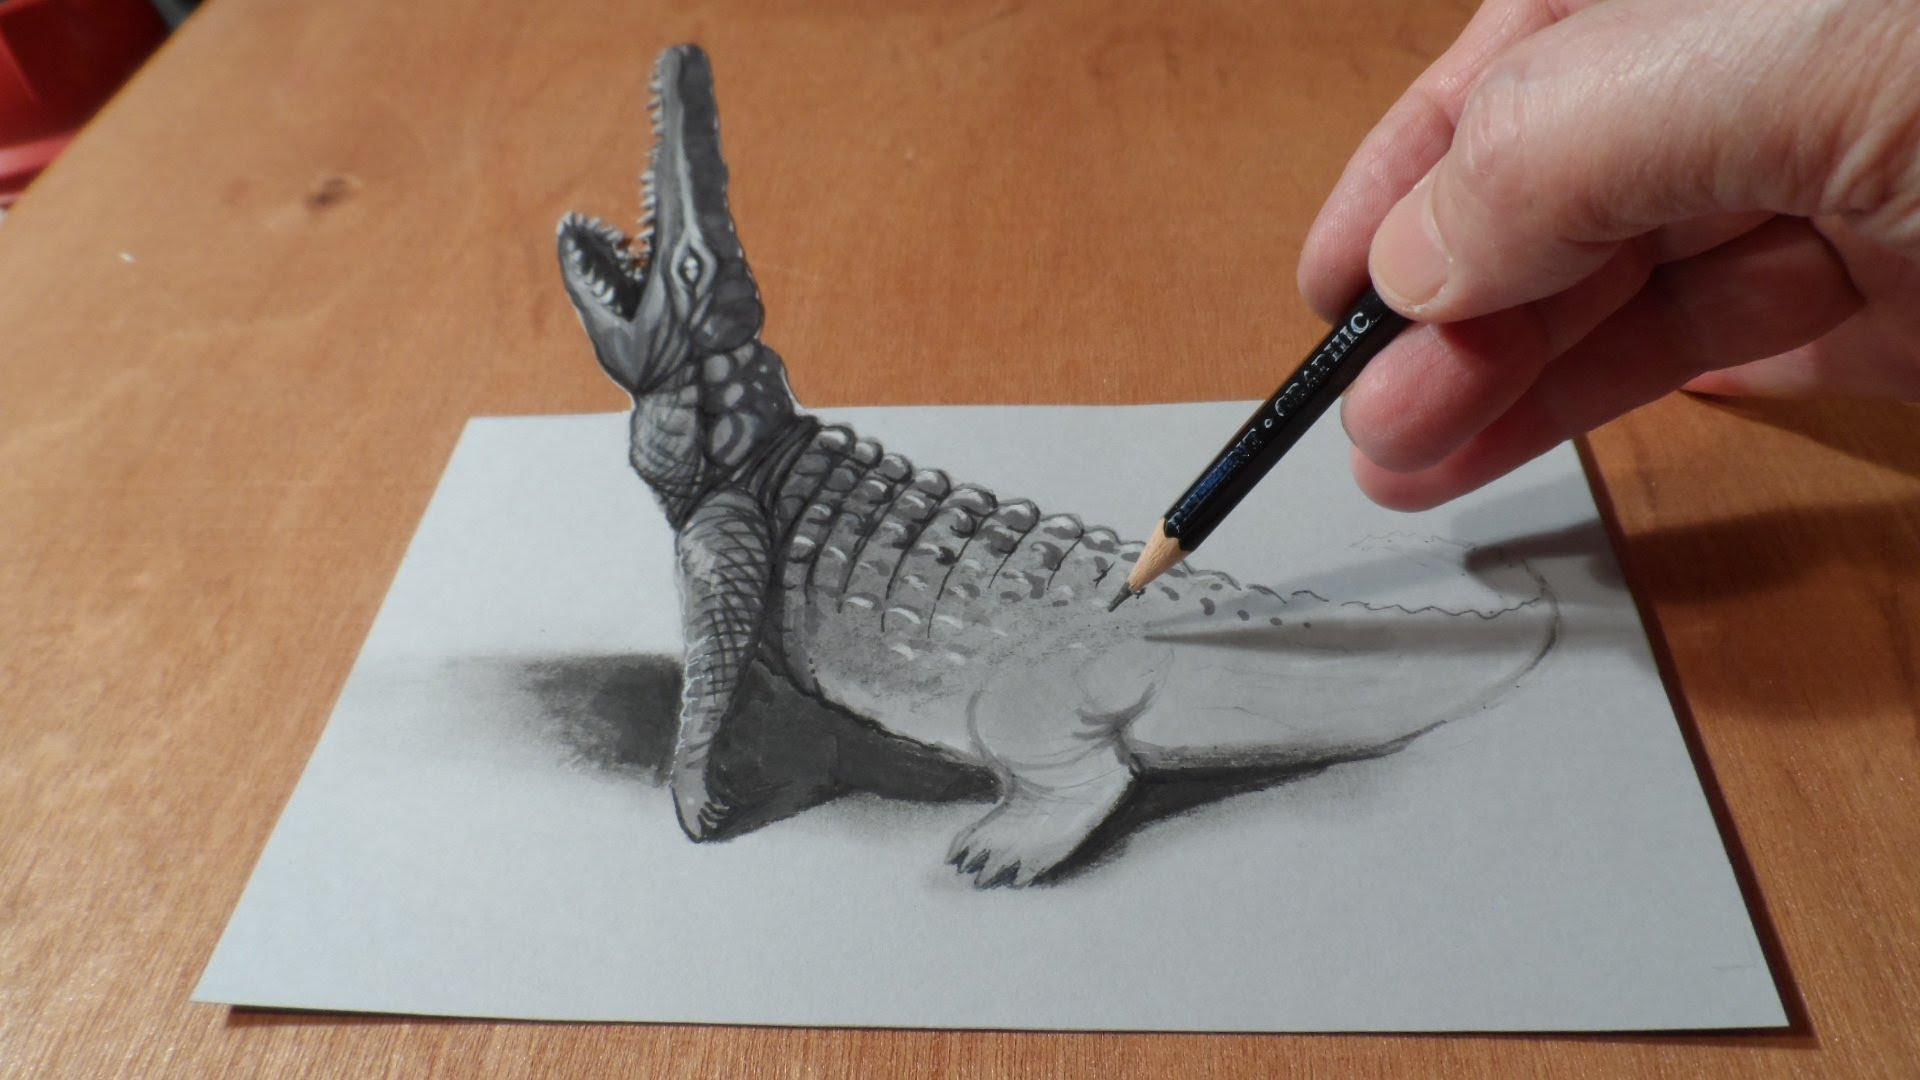 Drawn 3d art really Crocodile on Crocodile Optical 3D